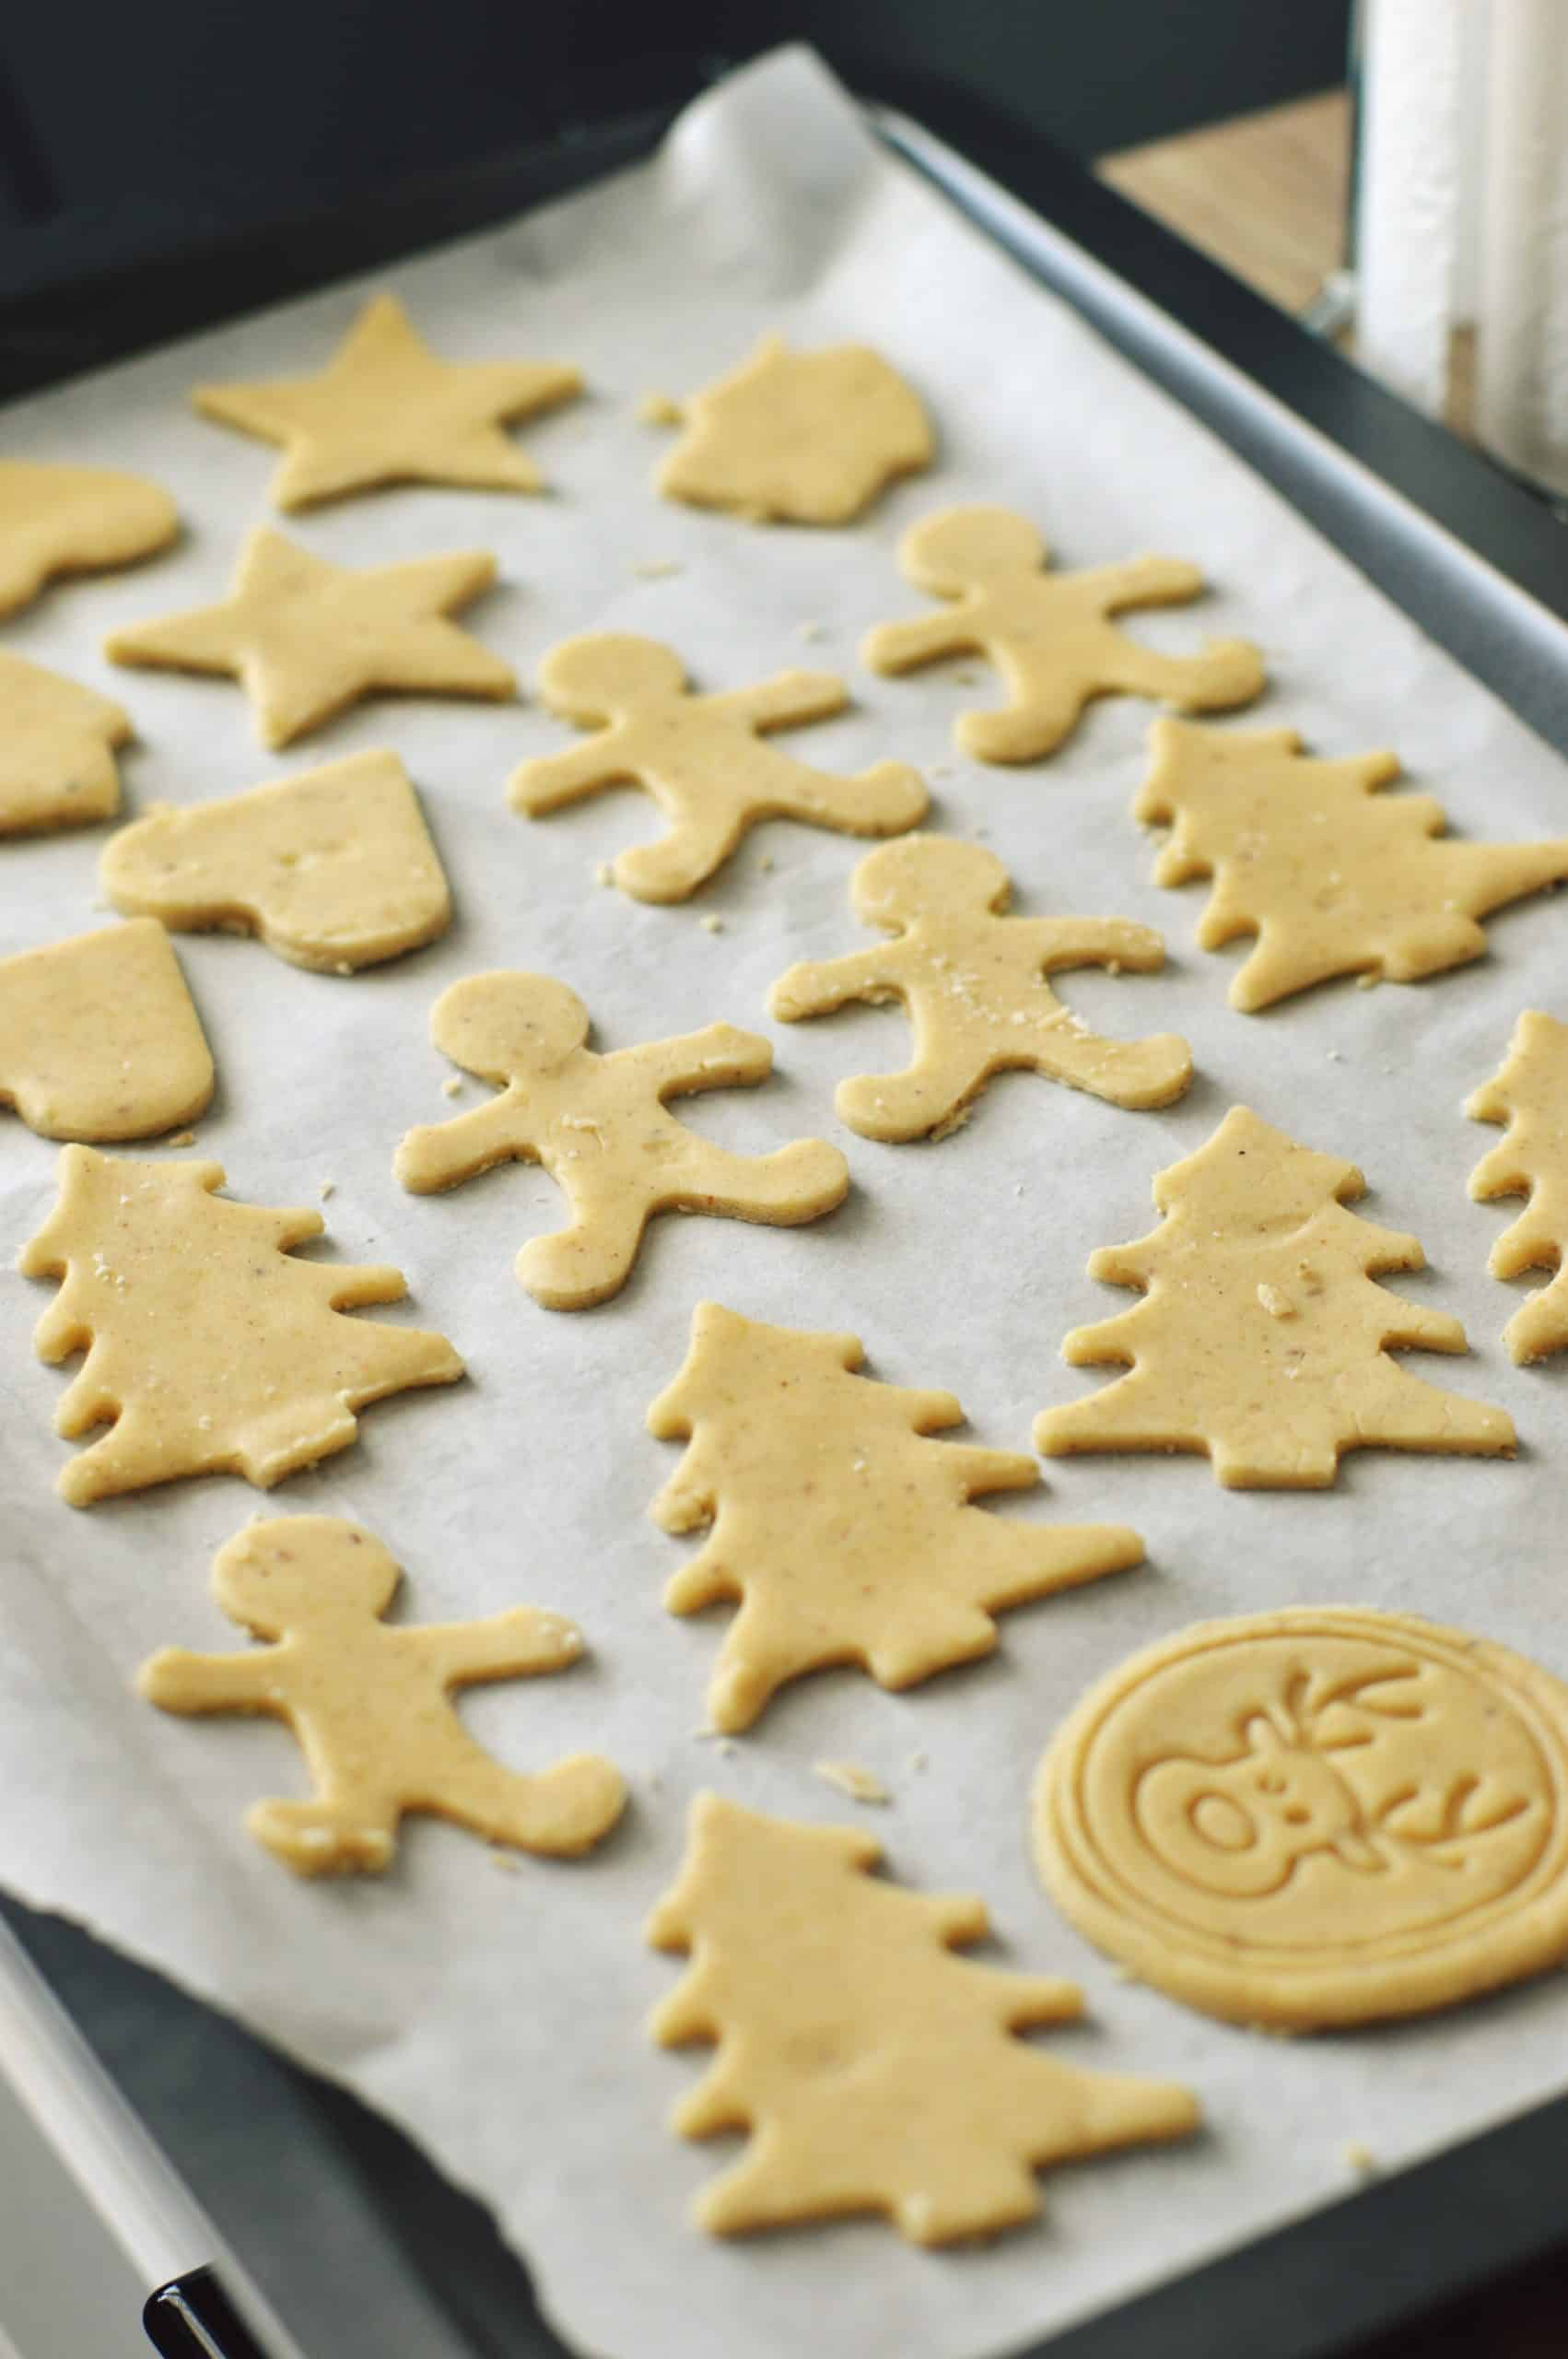 Surprising Things You Can Do With Your Cookie Cutters